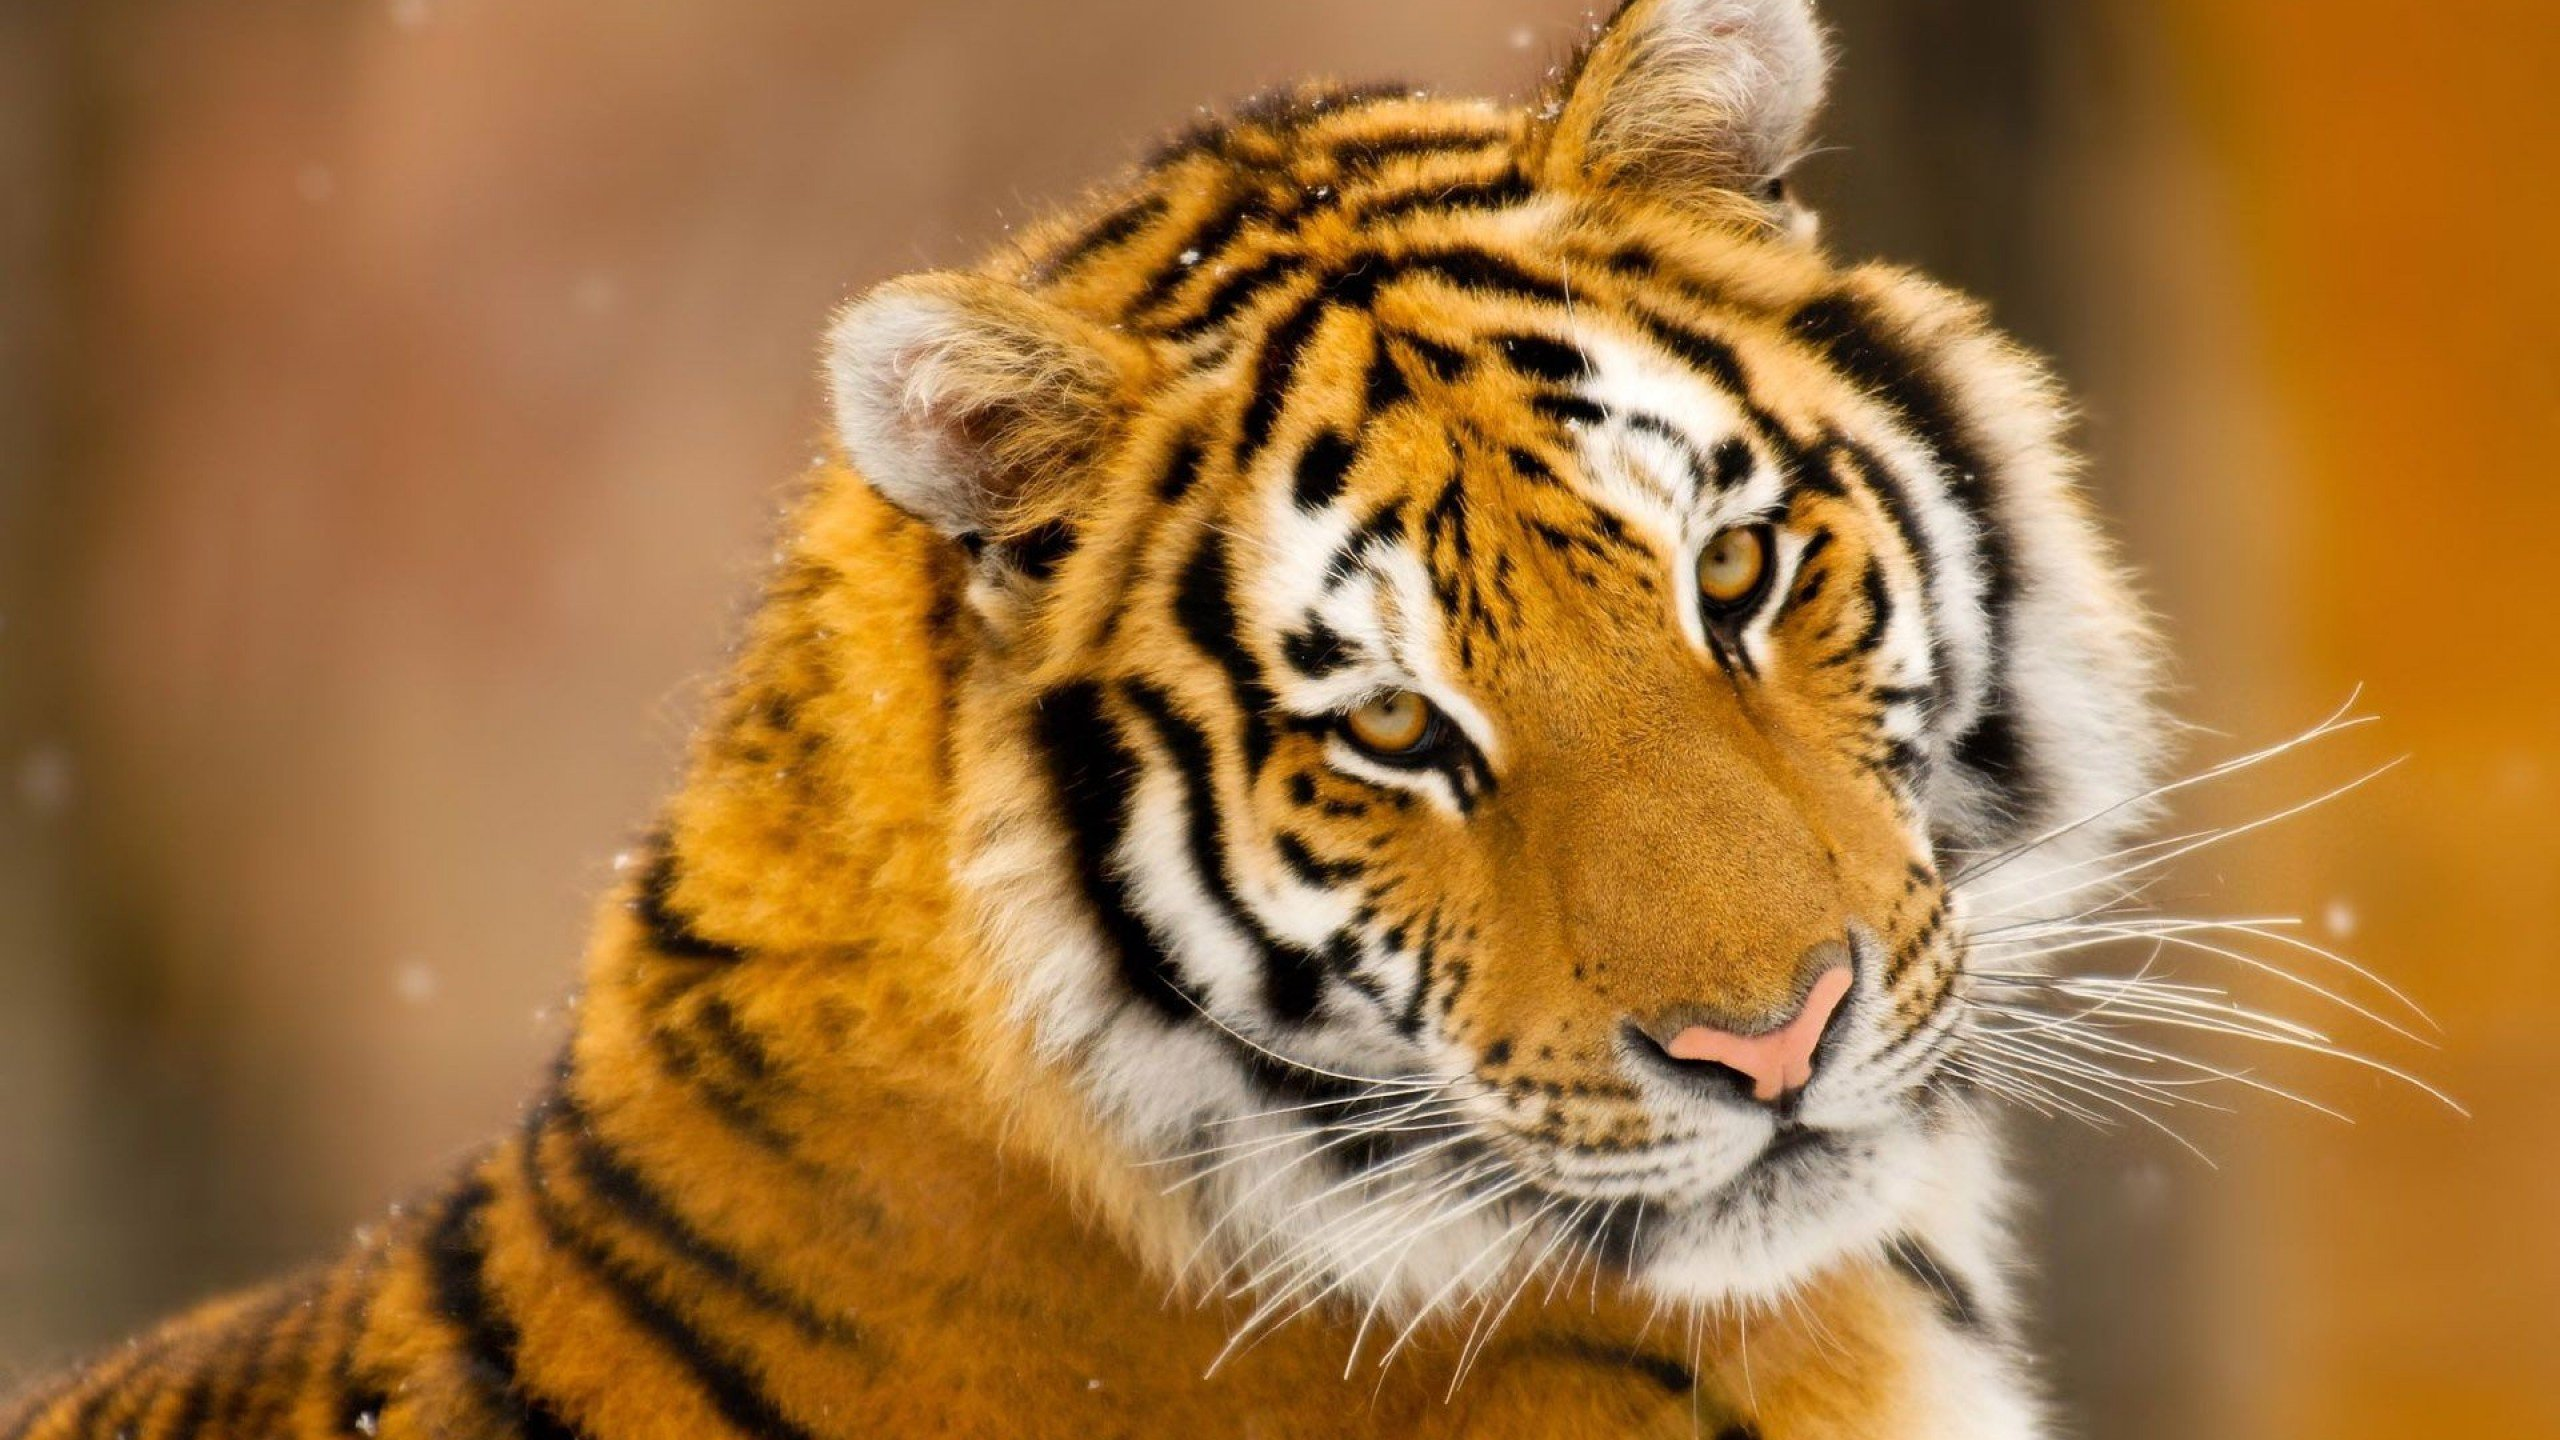 Download hd 2560x1440 Tiger desktop background ID:115888 for free